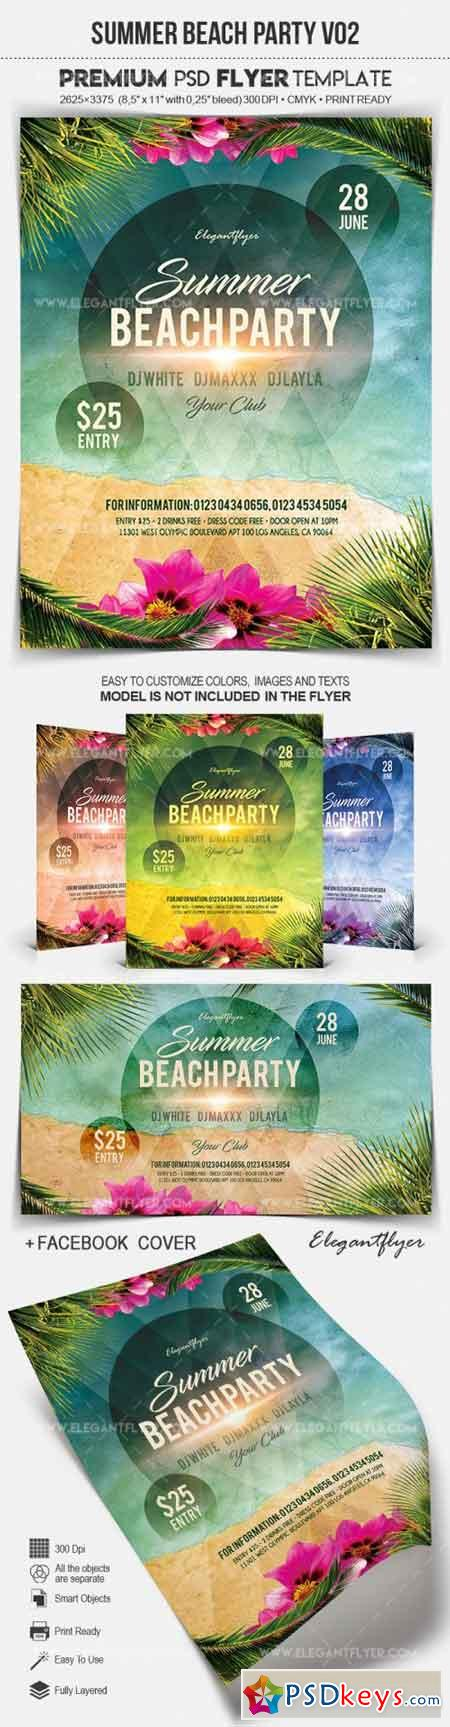 Summer Beach Party V02 – Flyer PSD Template